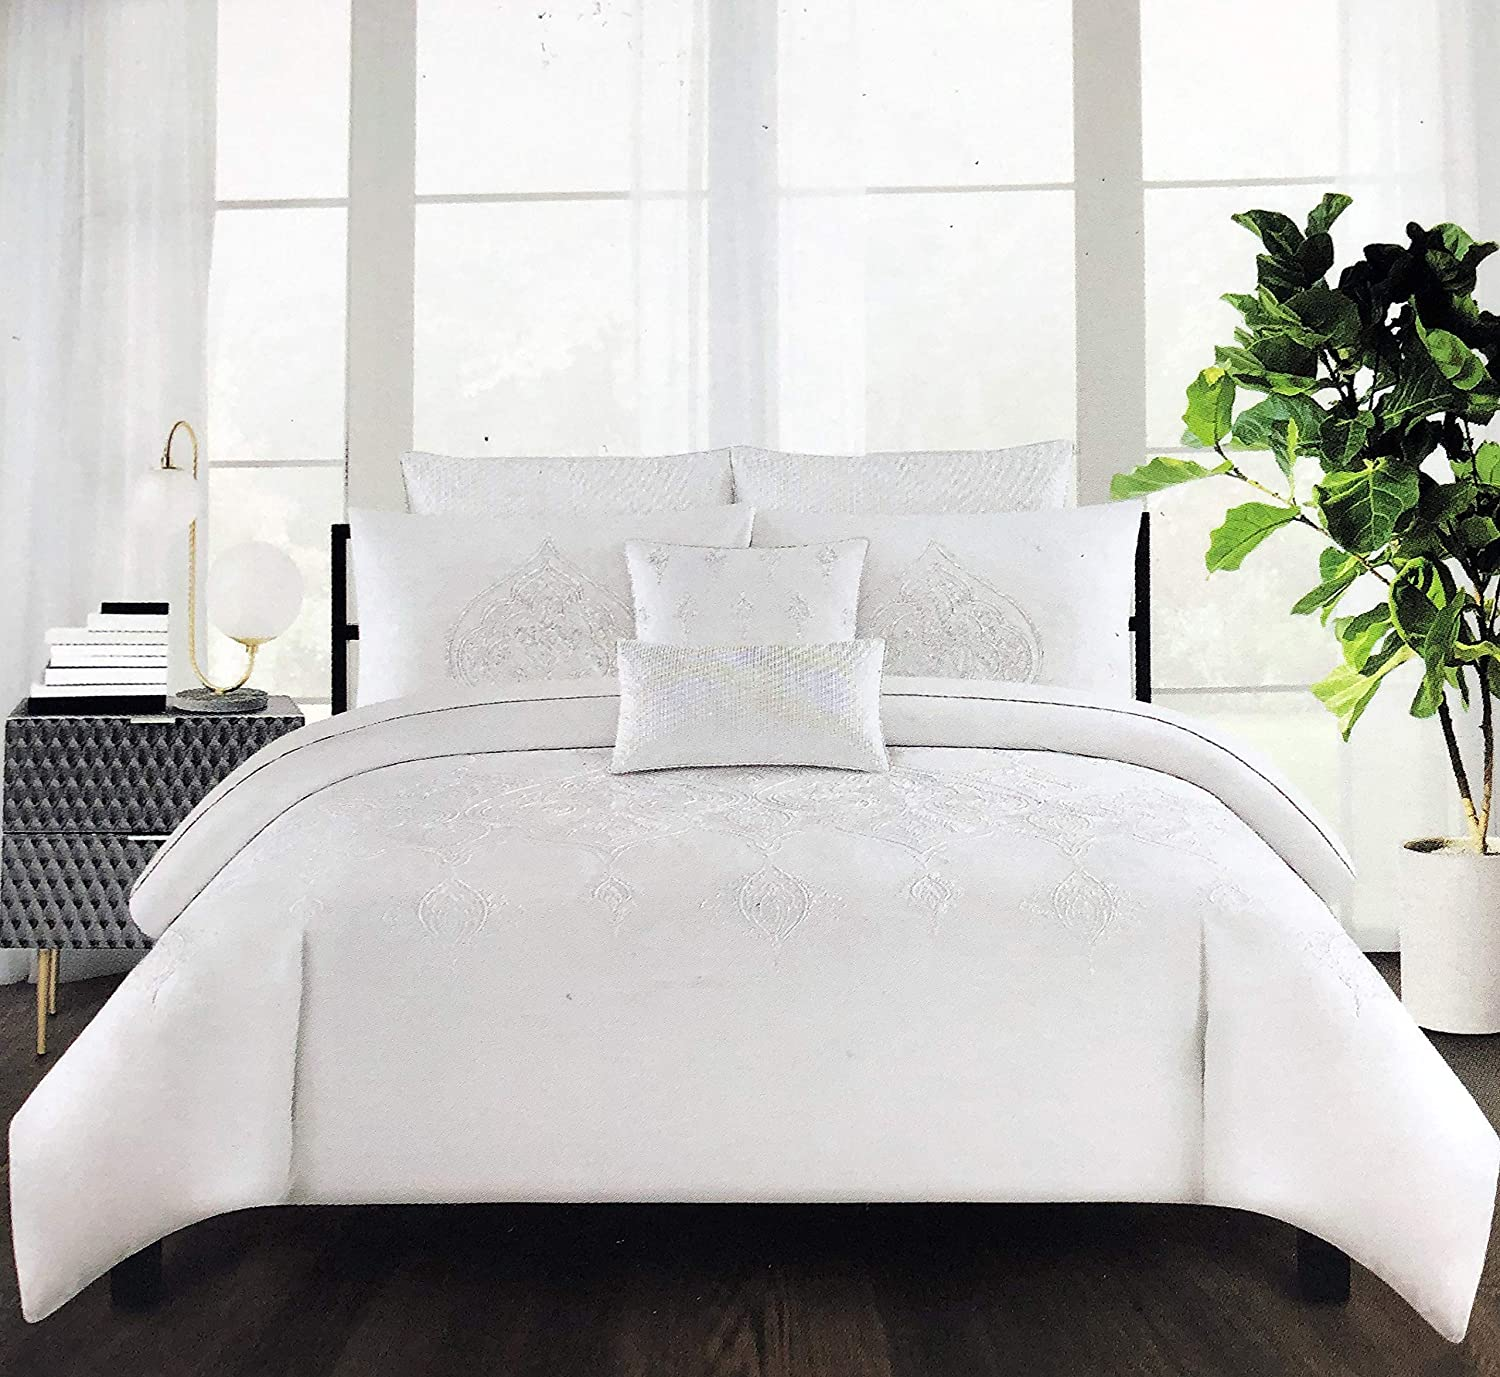 Royal Embroidery Tahari Home Bedding King Size Luxury 3 Piece Duvet Comforter Quilt Cover Shams Set Embroidered White Thread Floral Medallion Pattern on Solid White